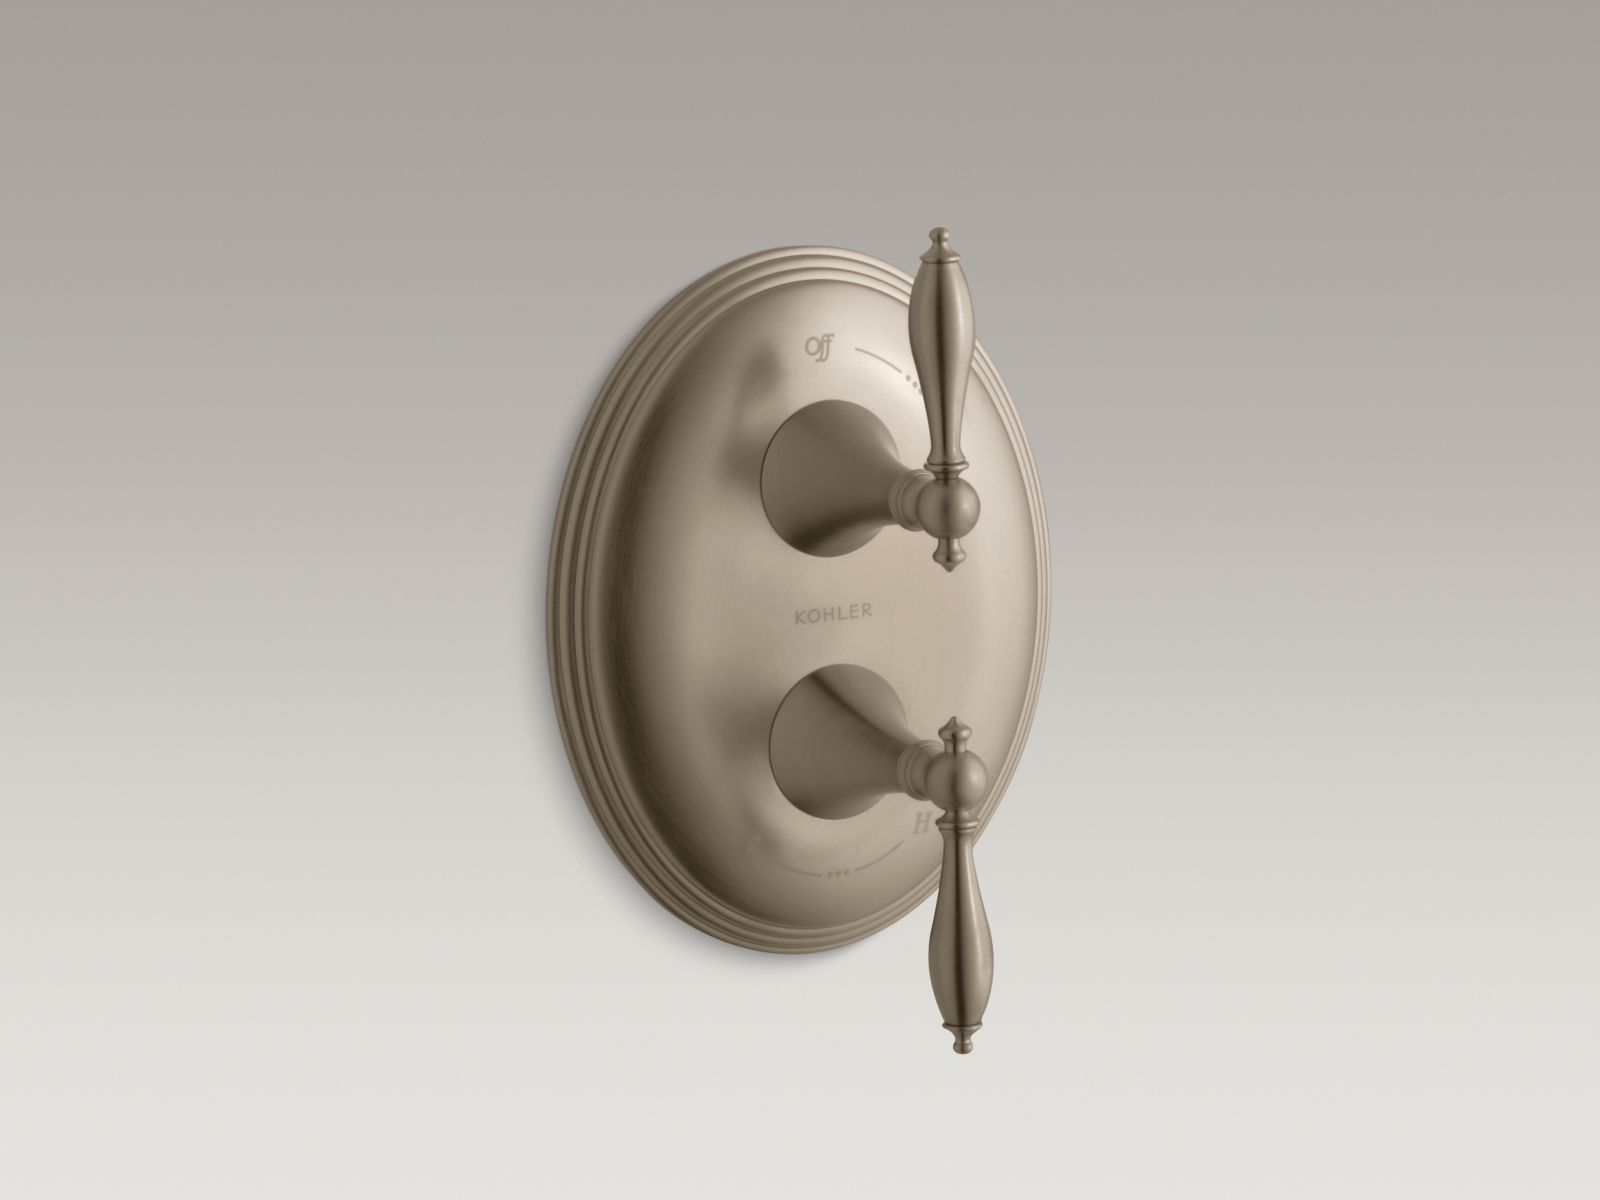 Kohler K-T10302-4M-BV Finial Stacked Volume and Transfer Valve Trim with Lever Handles Brushed Bronze